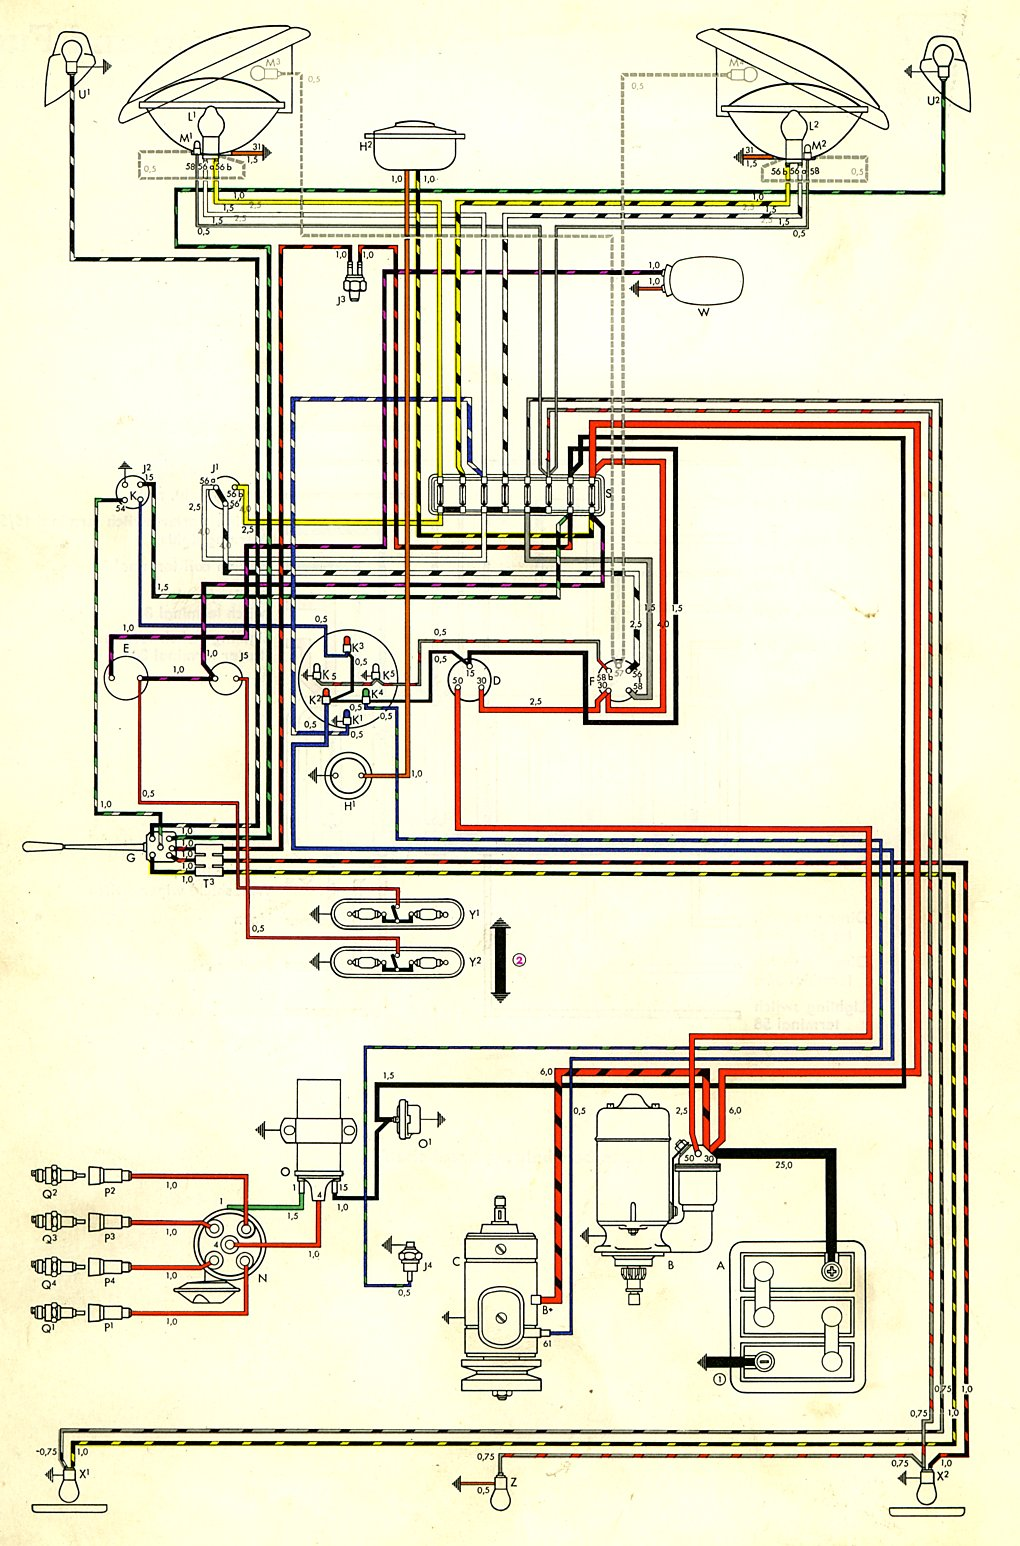 1971 Ford F250 Ignition Wiring Diagram Starting Know About 1976 F700 Dash Chevy Truck Rh Prezzy Co